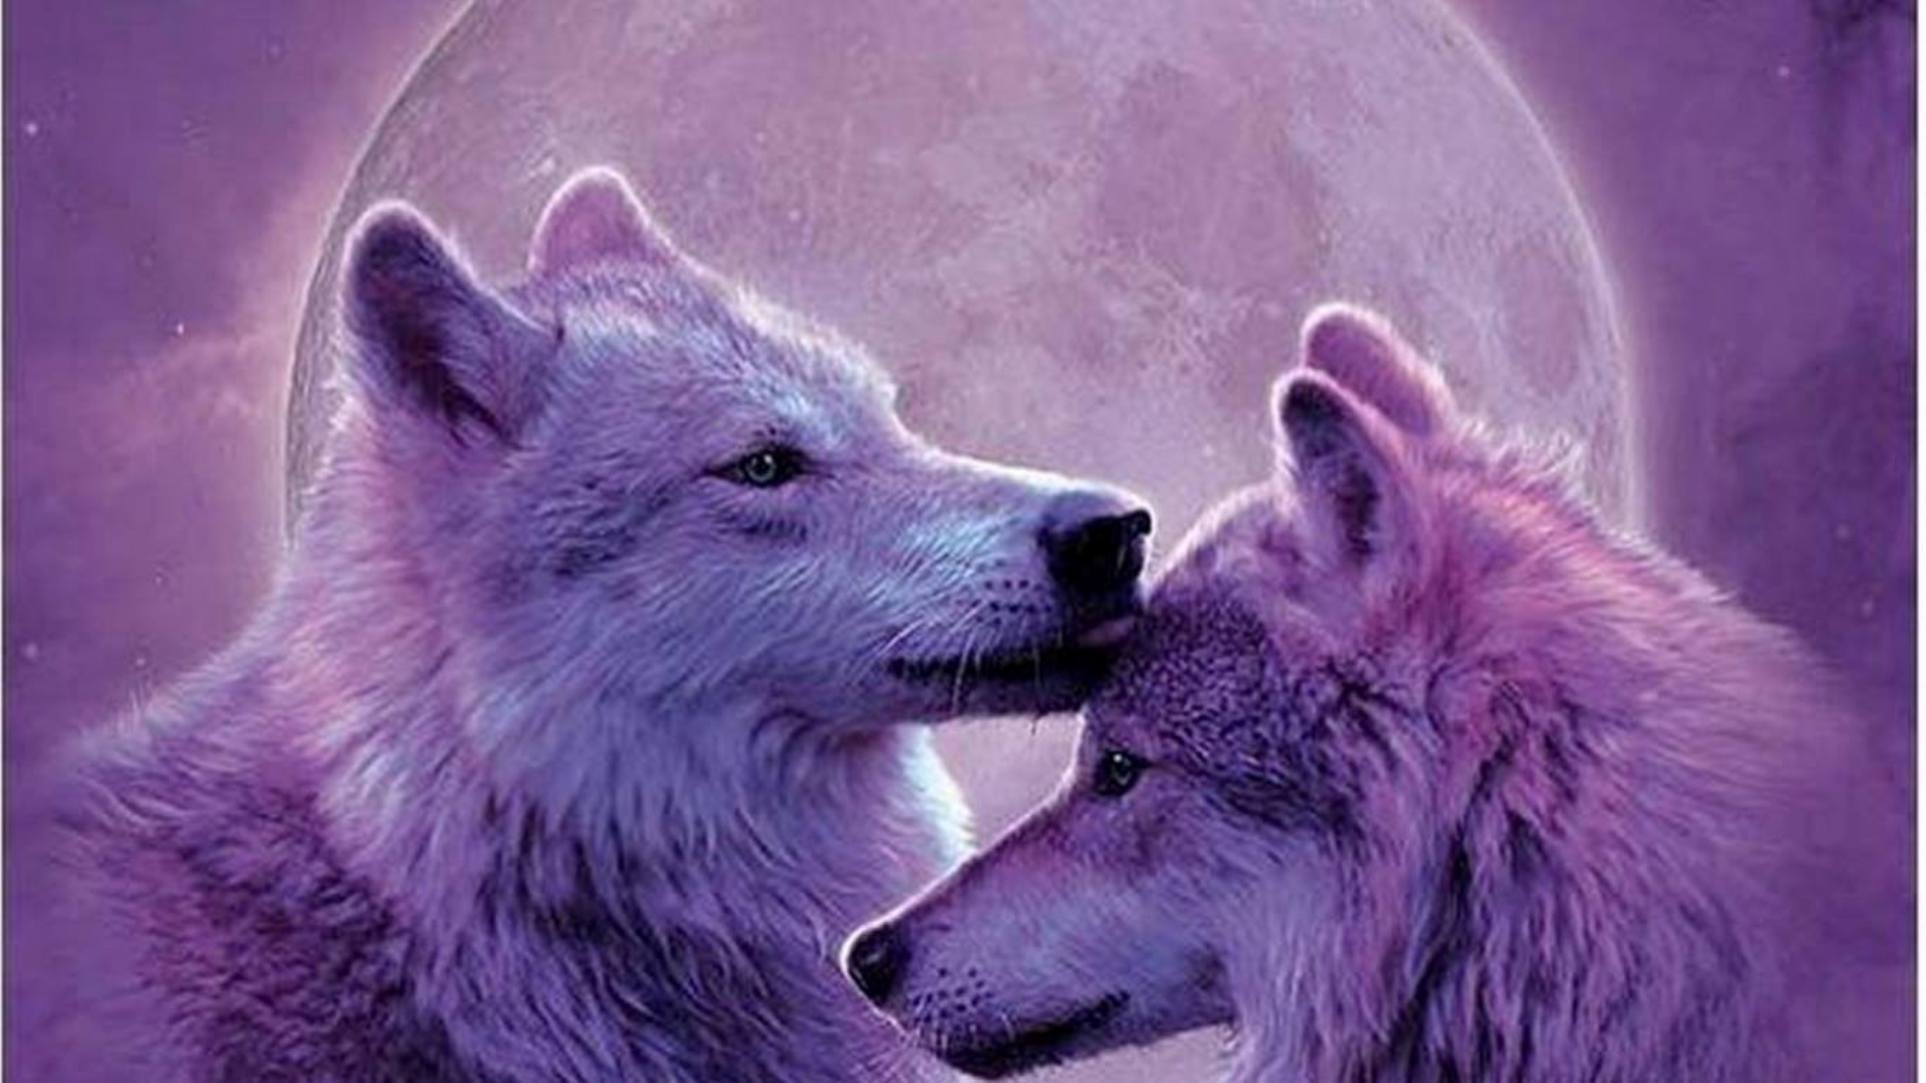 other moonwolves wolves animals painting moon nature wolf 53 1926x1083